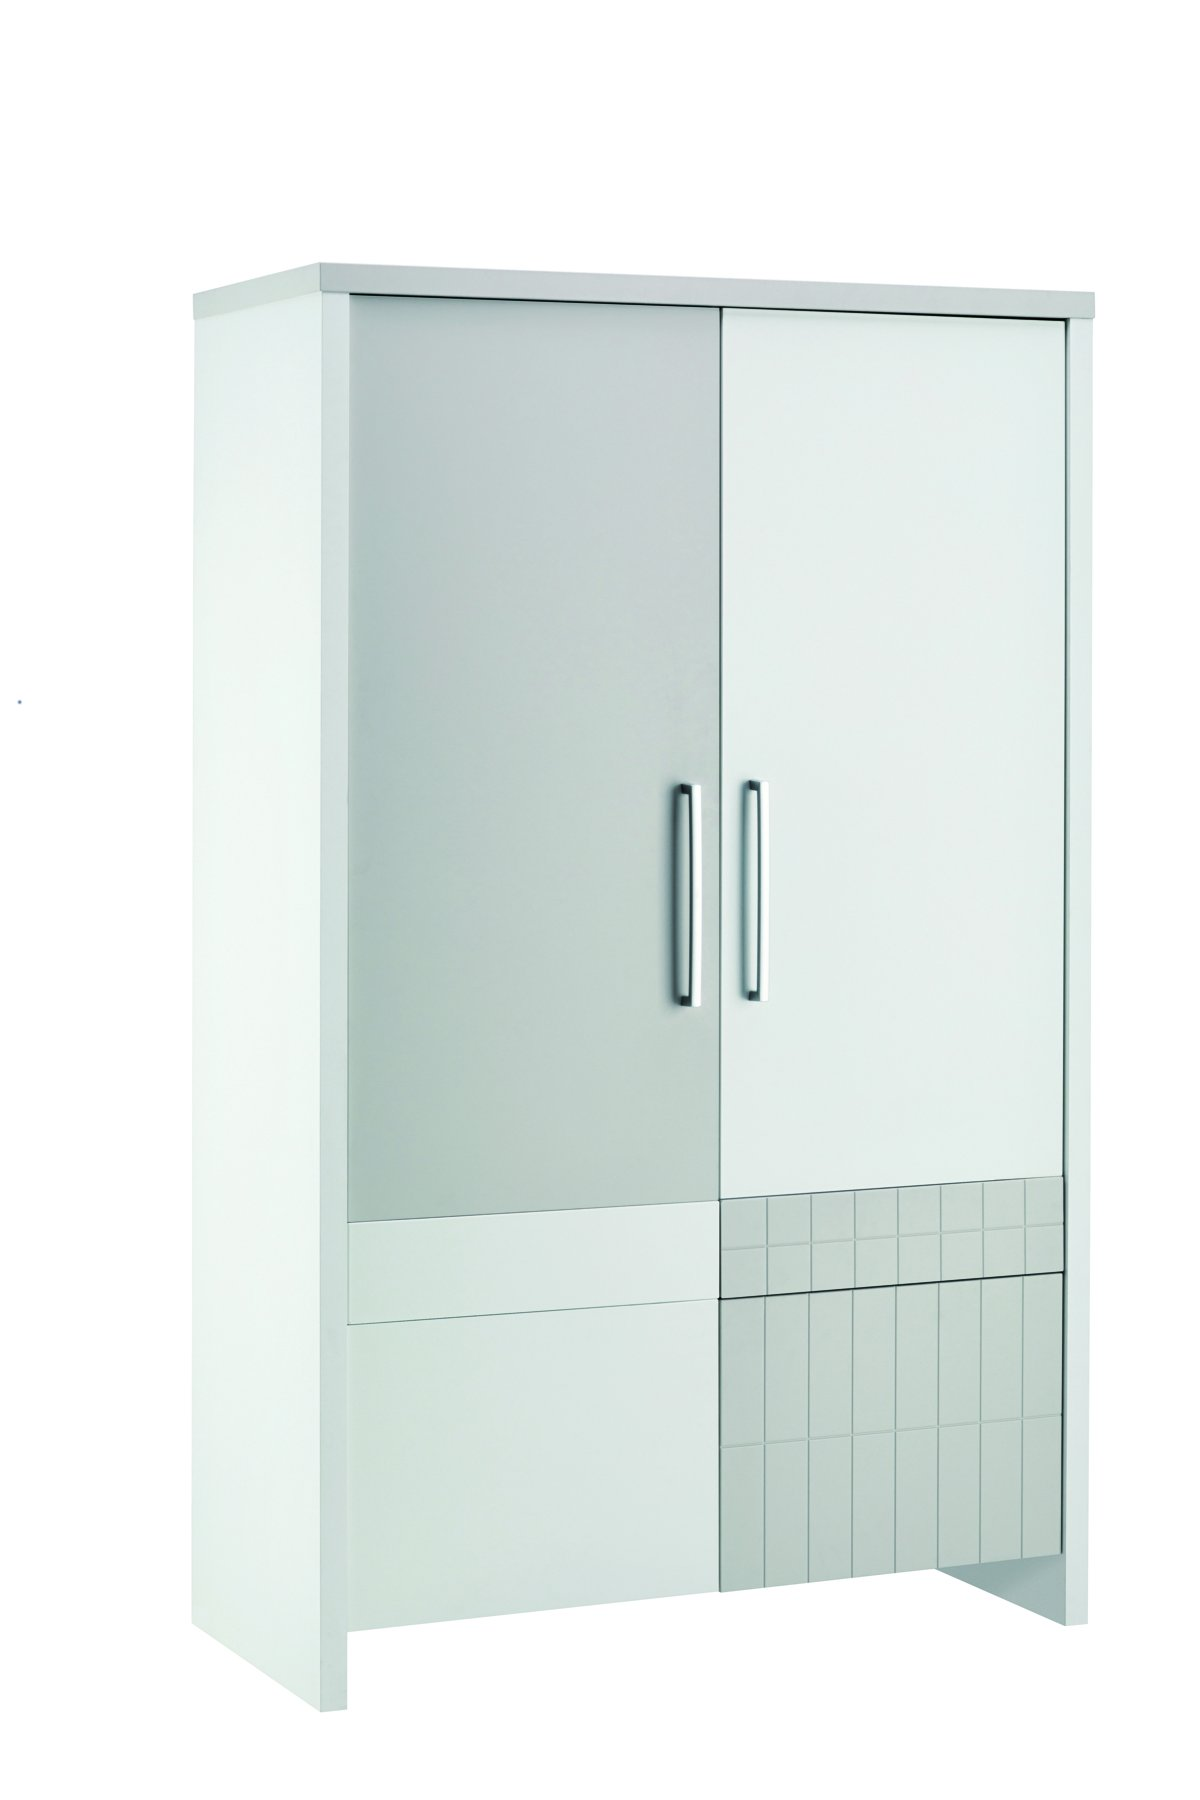 Schardt 06 960 54 Joy 69 Cupboard with 4 Doors, Beige  GEORG SCHARDT KG - DROPSHIP